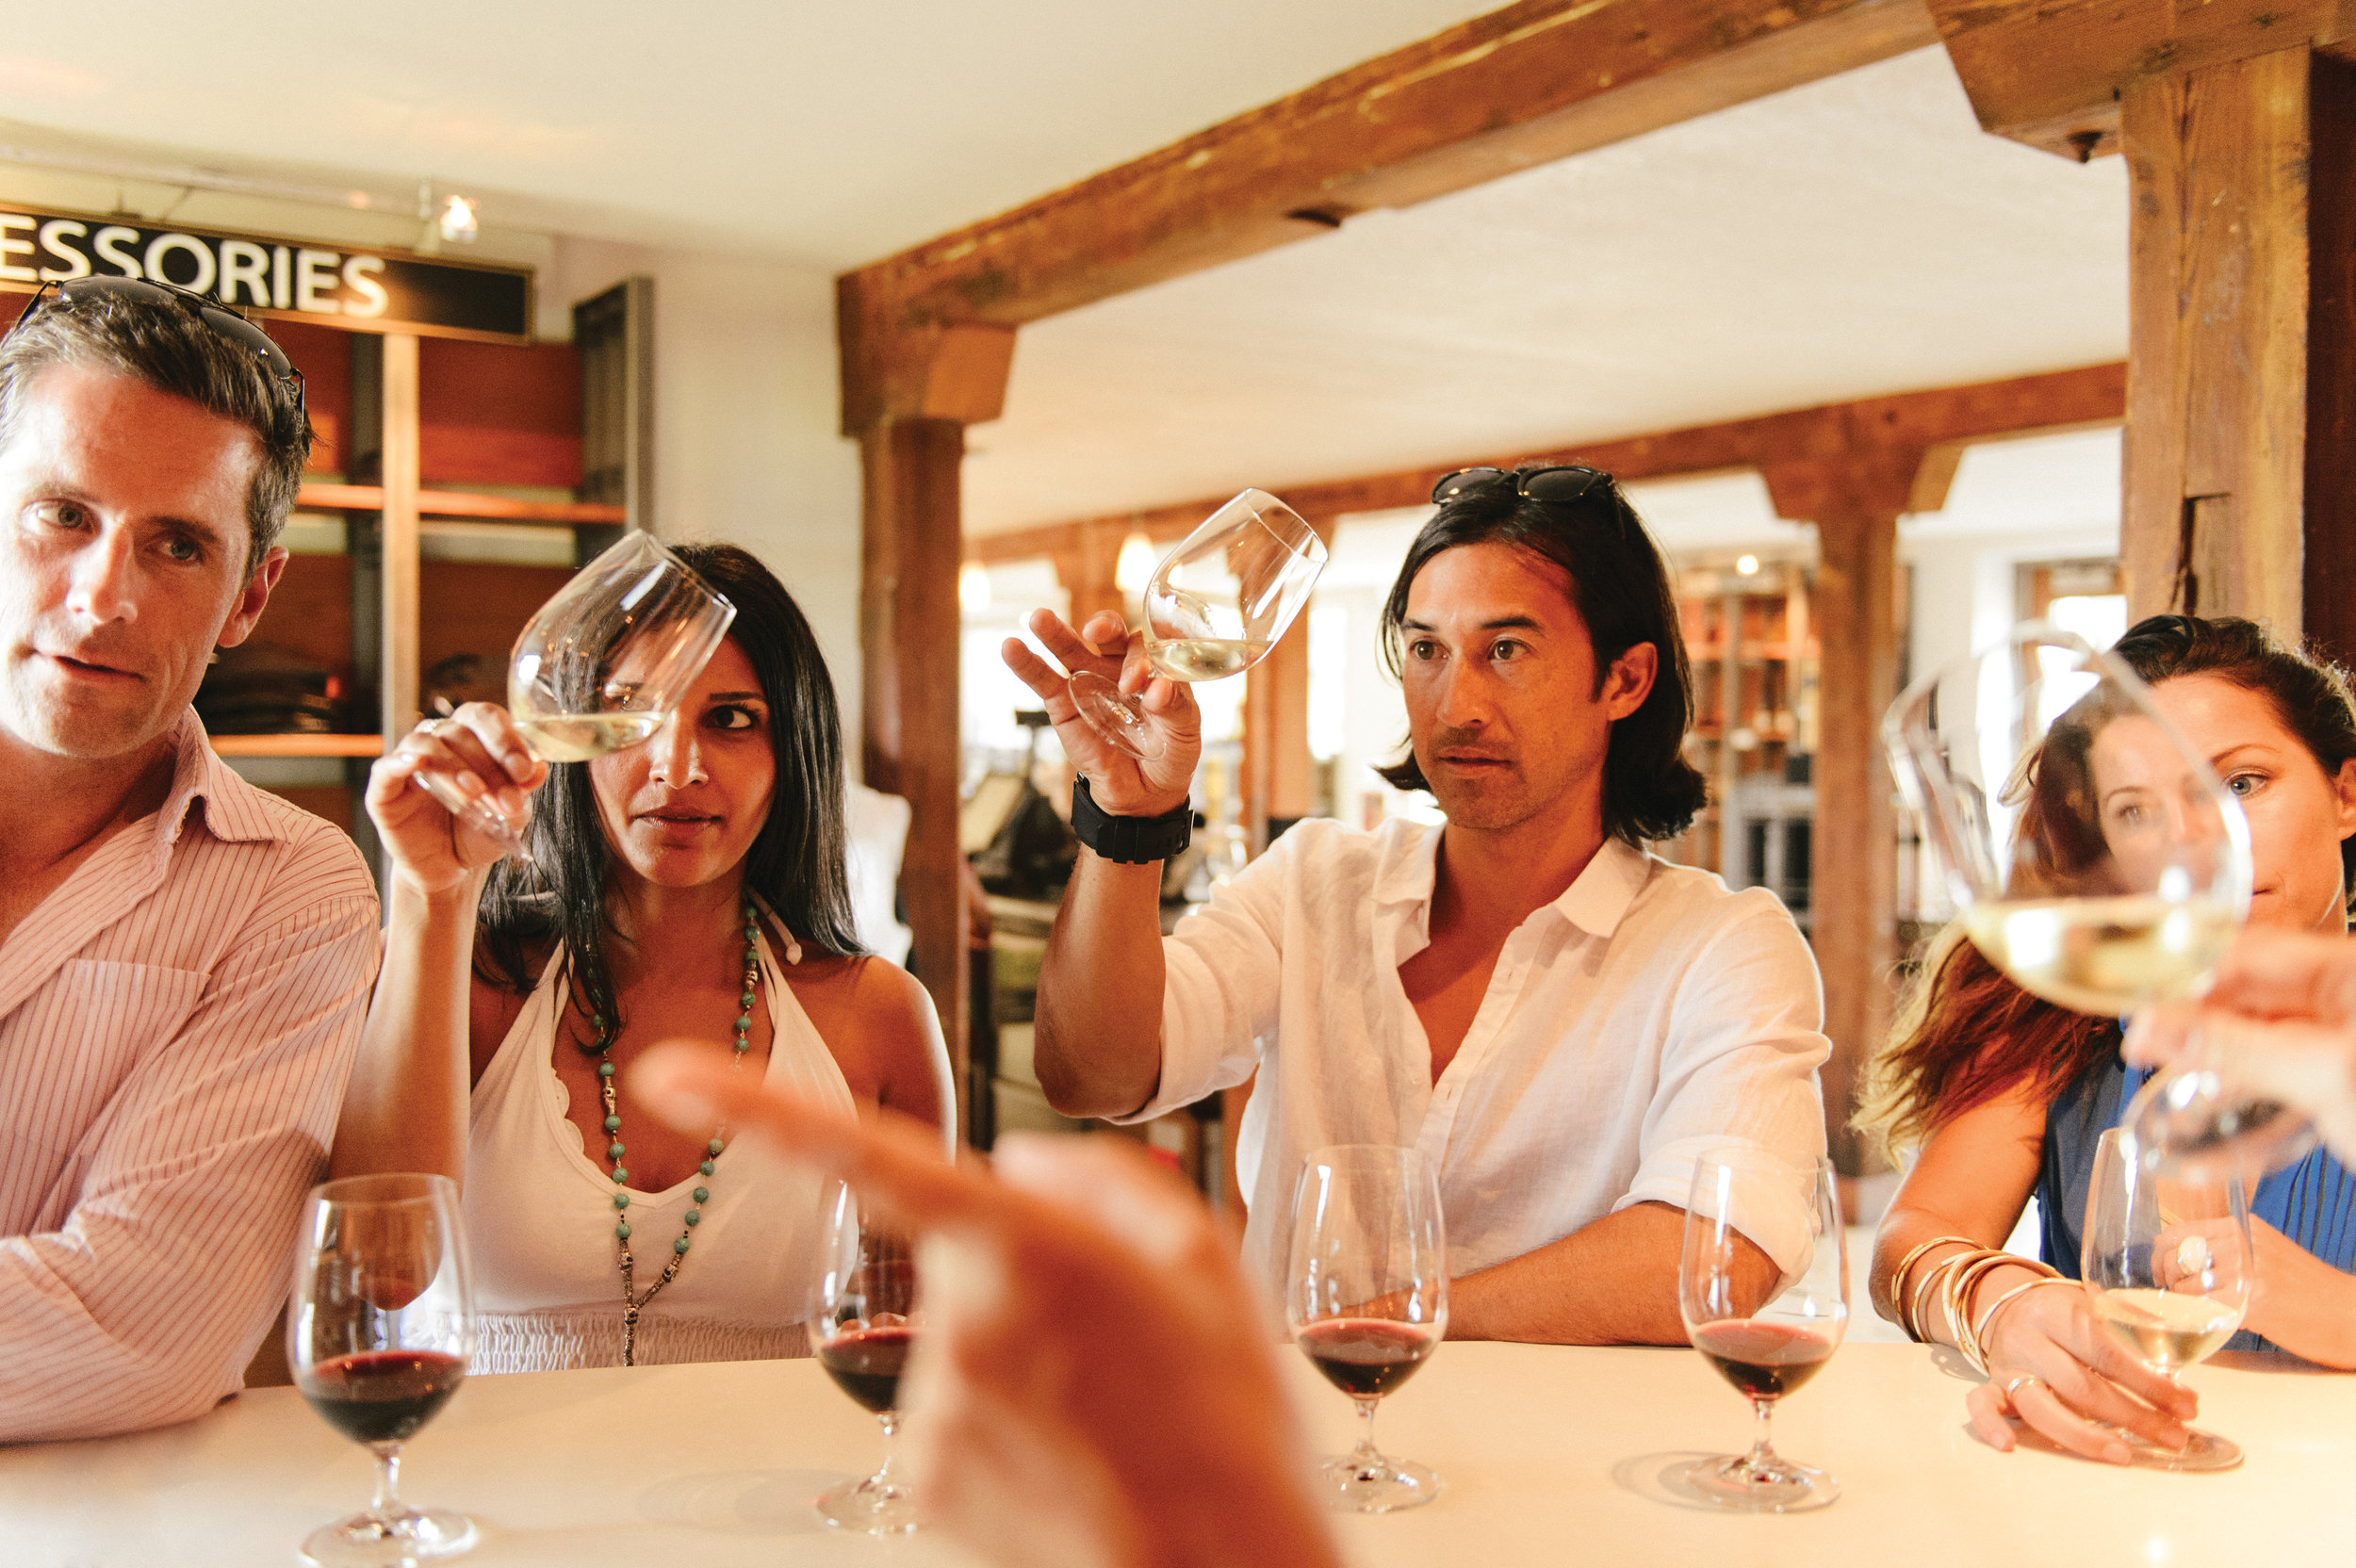 Relaxed tasting rooms offer something for everyone - from first-time tasters to serious afficionados.